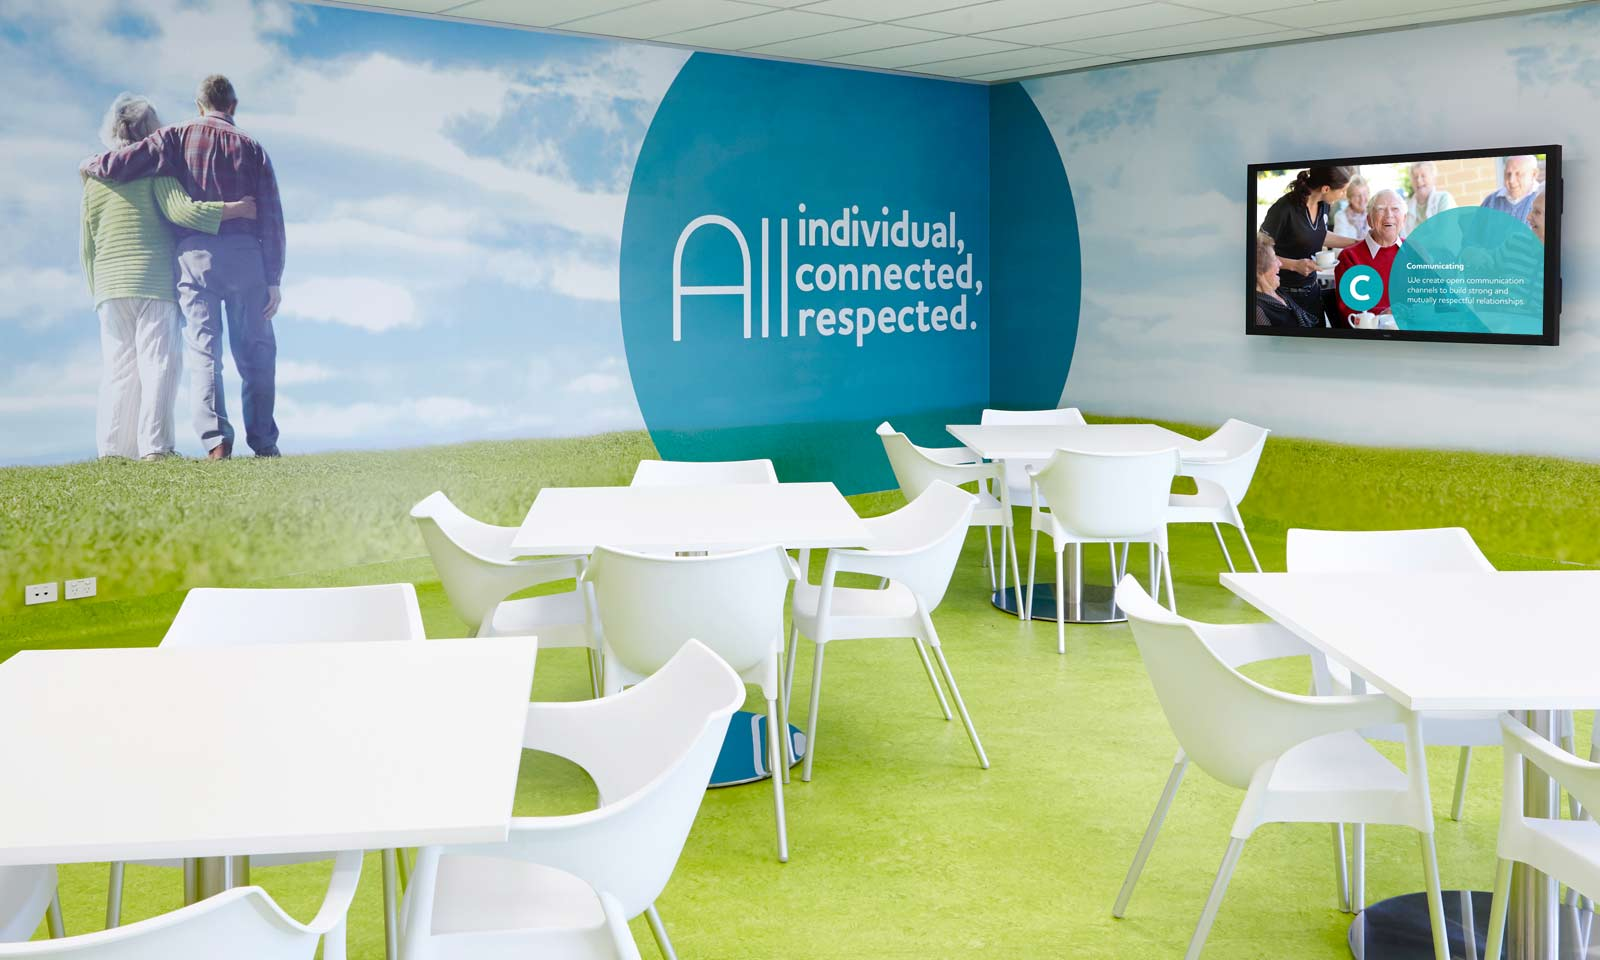 Sydney branding company interiors, BaptistCare staff common area.